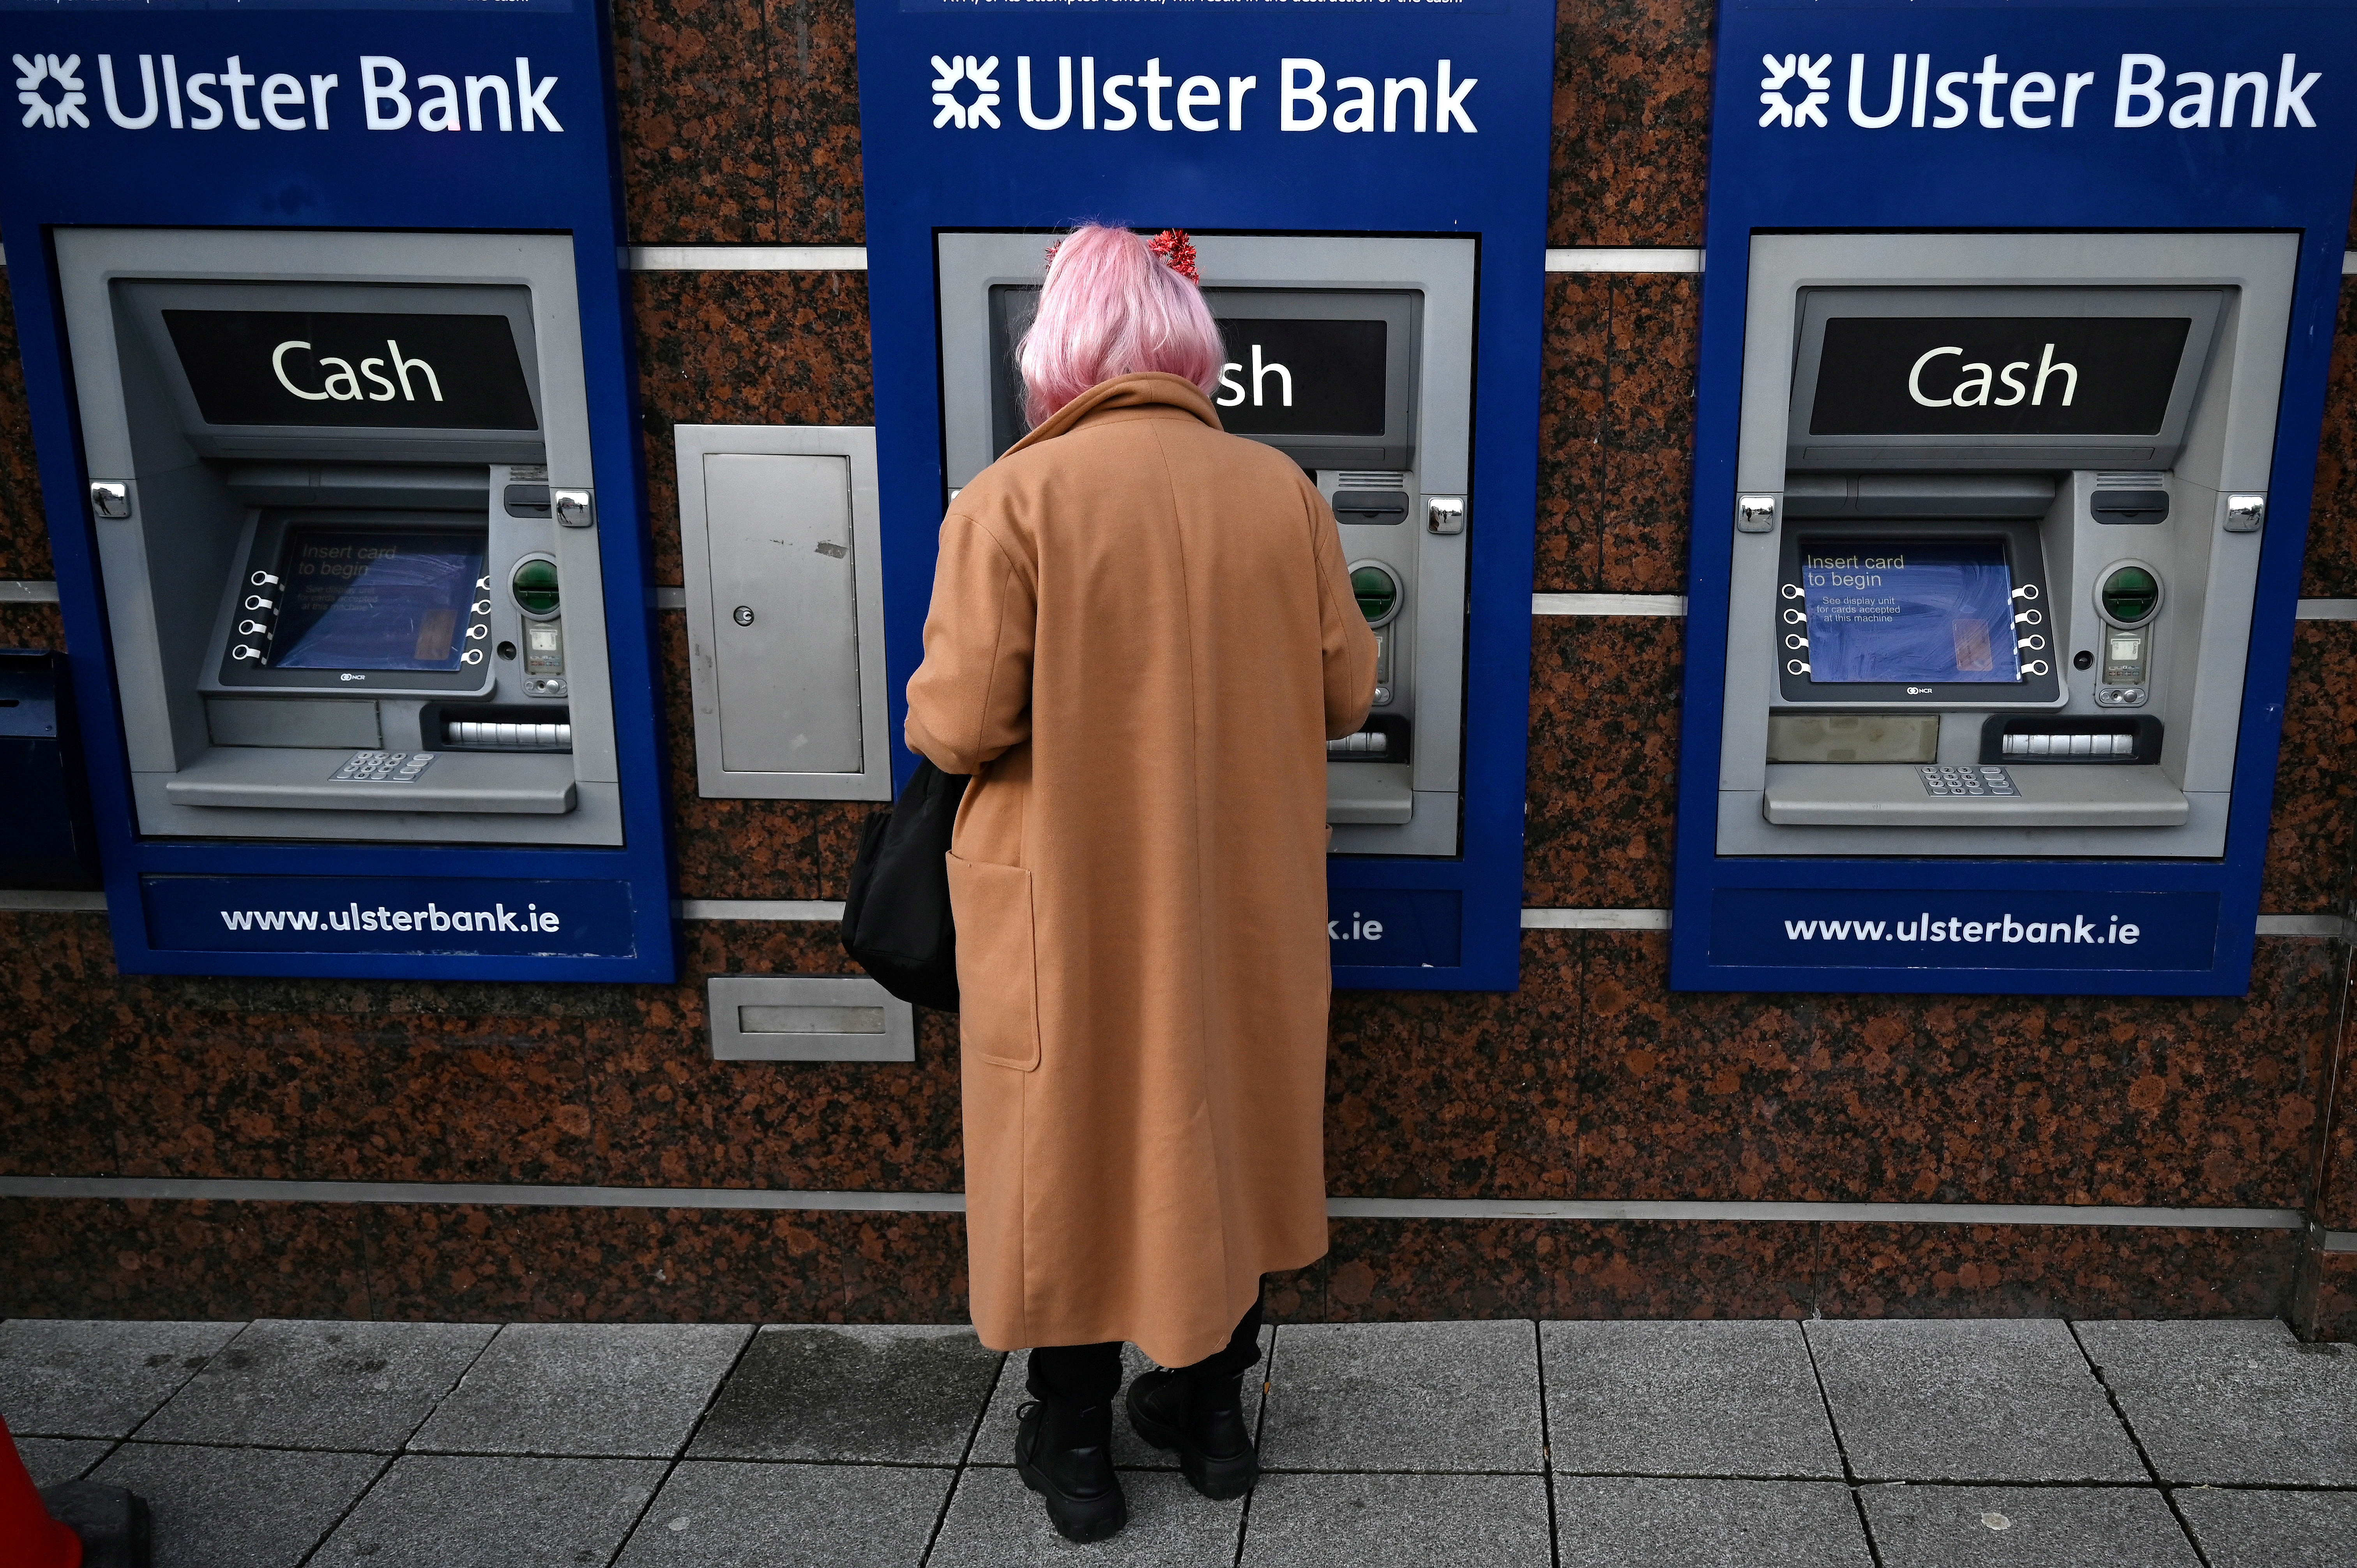 A woman uses an Ulster Bank ATM to take out cash amid the spread of the coronavirus disease (COVID-19) pandemic, in Galway, Ireland, December 22, 2020. REUTERS/Clodagh Kilcoyne/File Photo